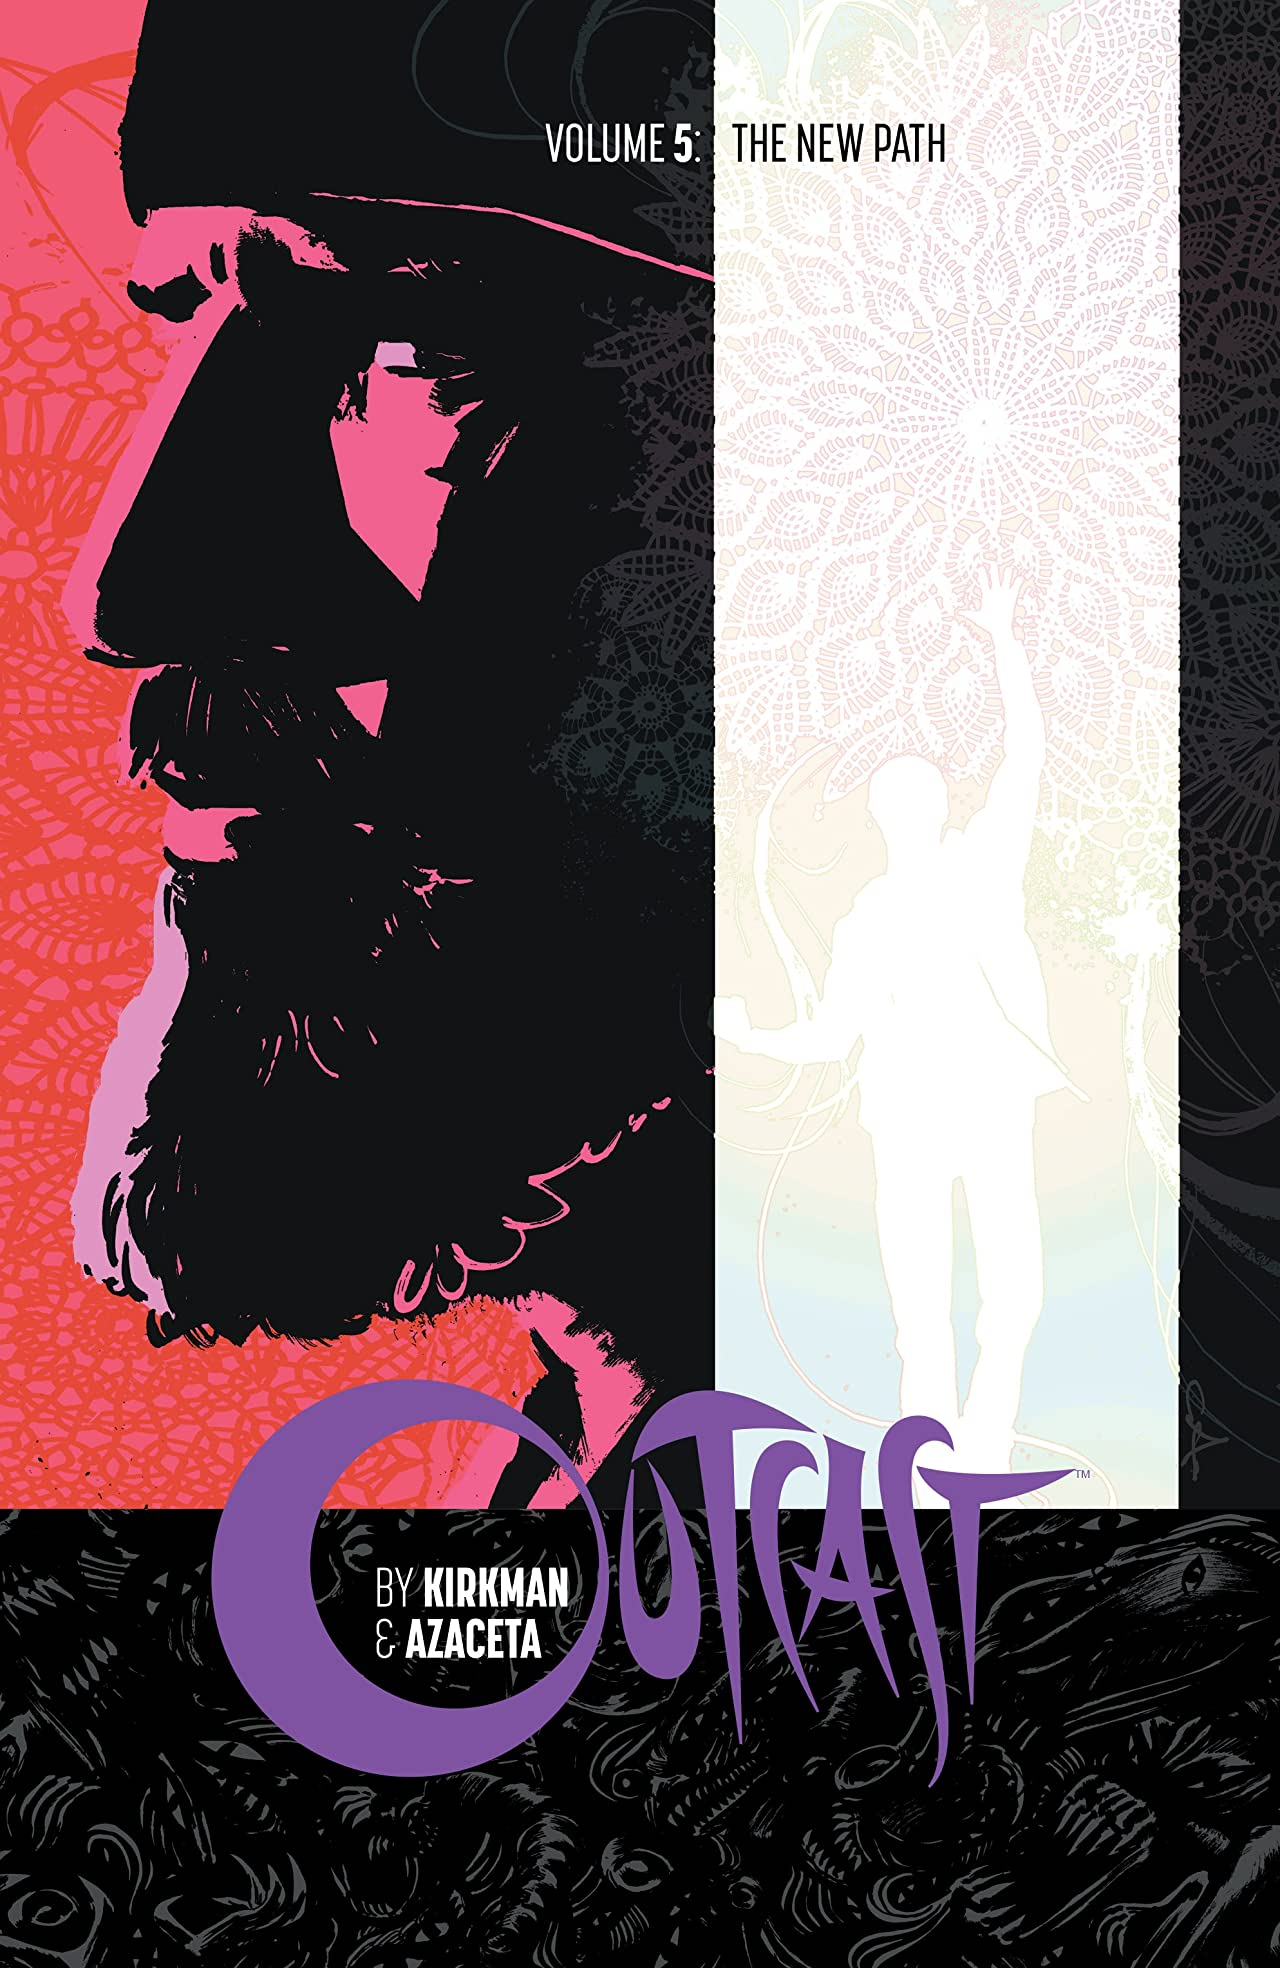 Outcast By Kirkman & Azaceta Tome 5: The New Path